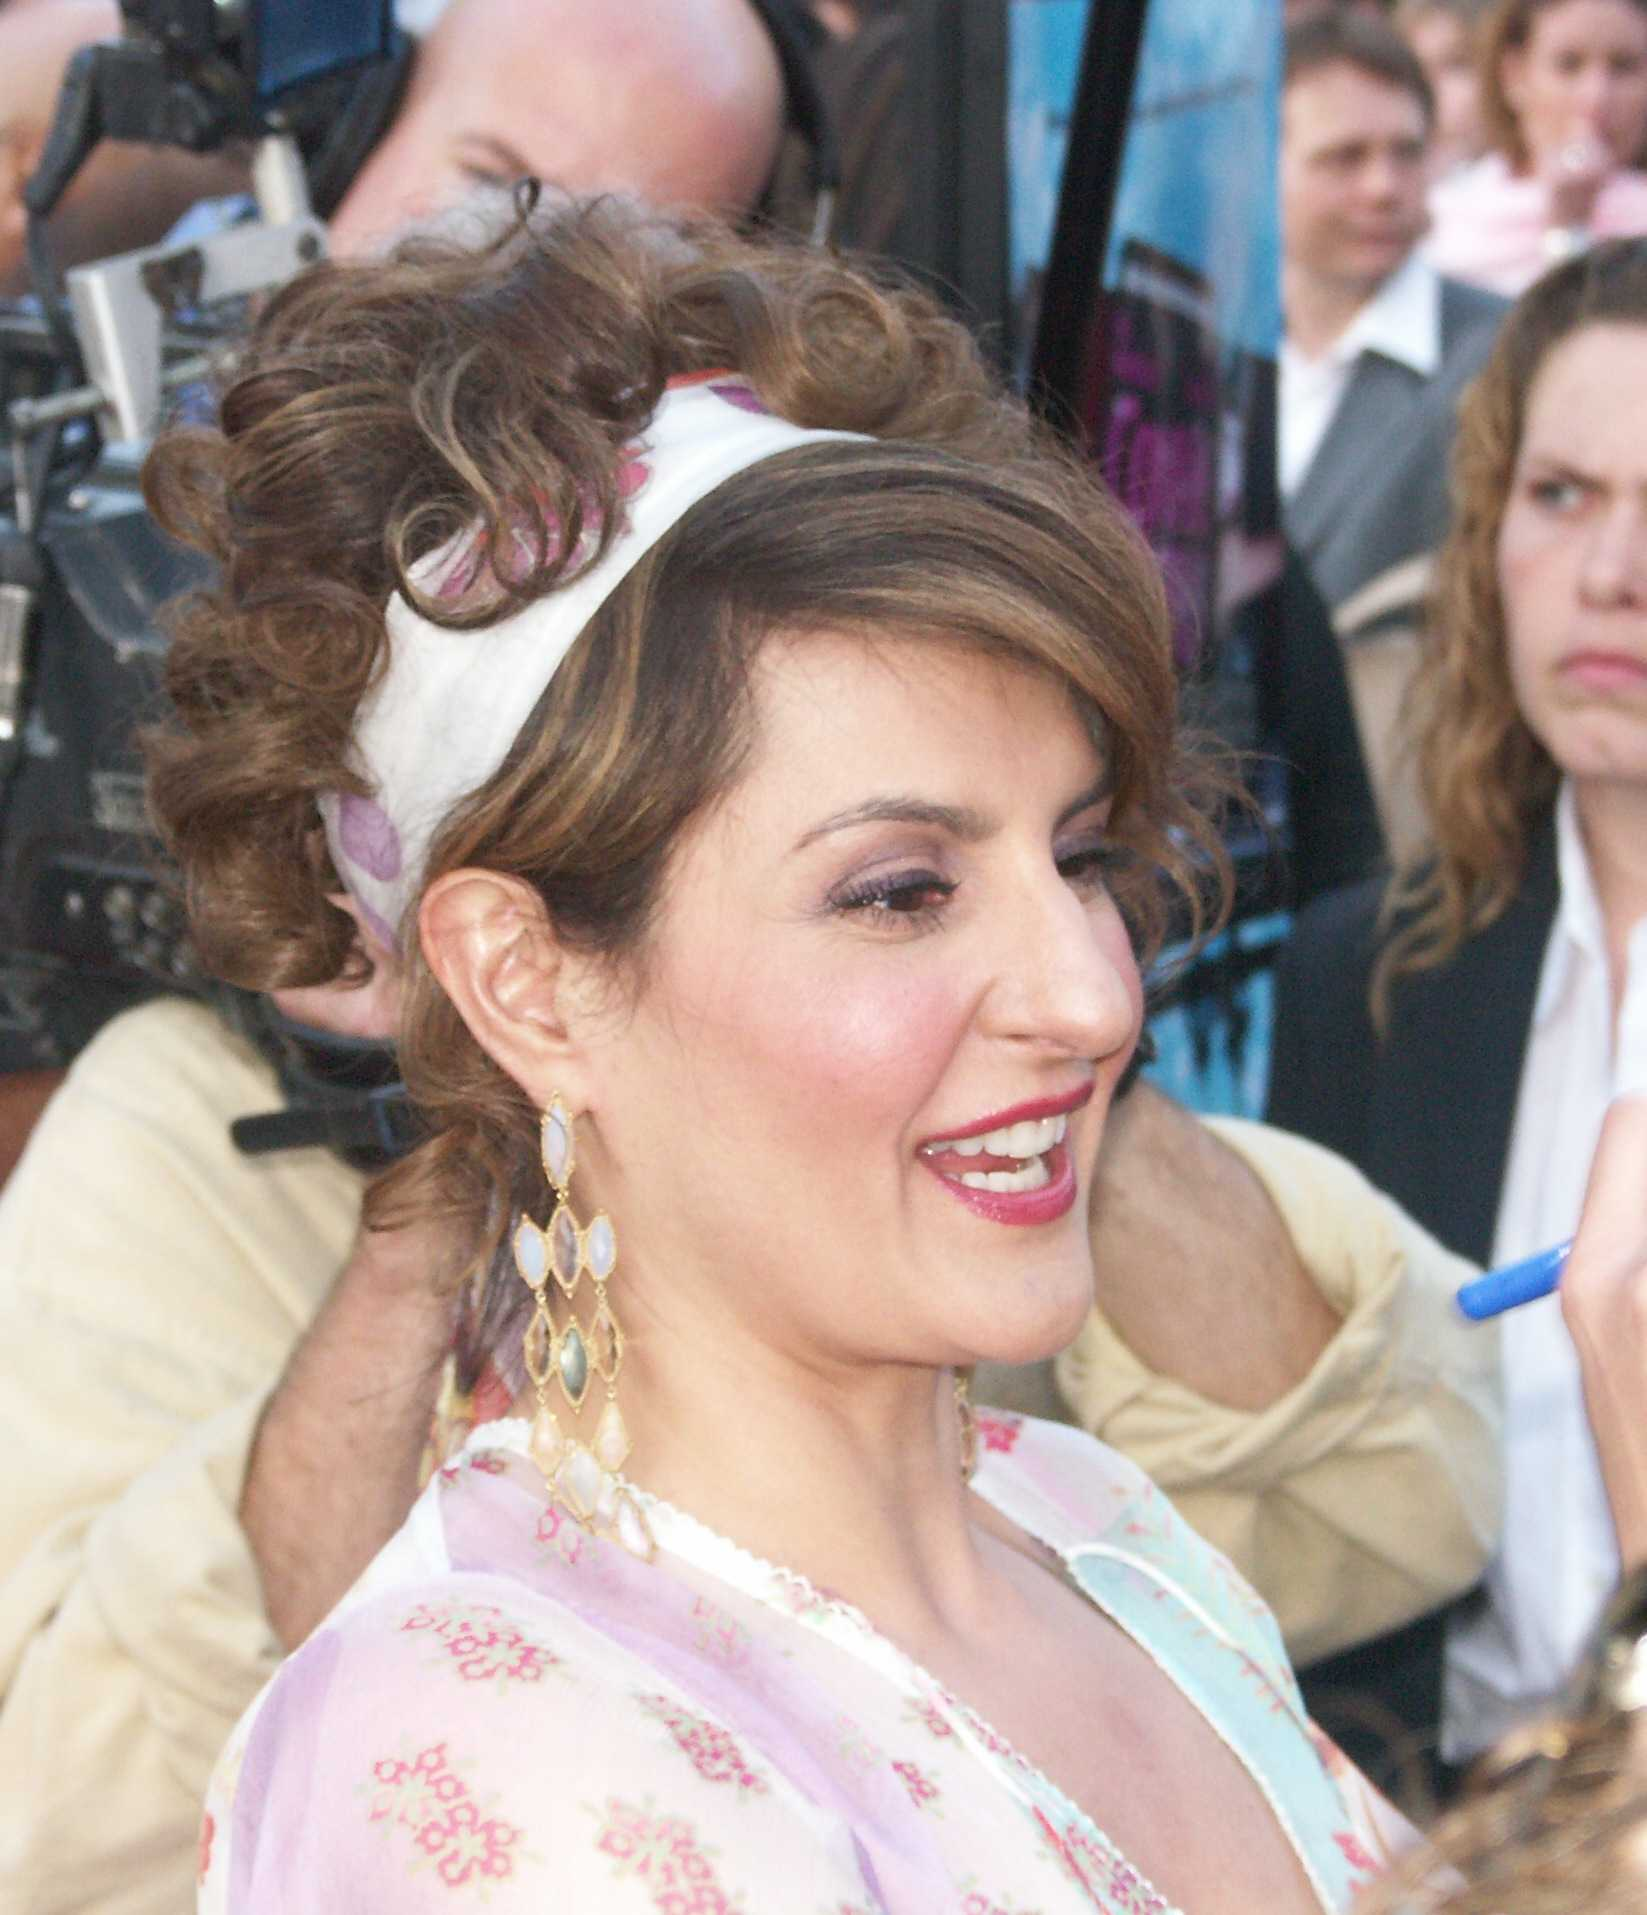 Nia Vardalos returns to her role as Toula Portokalos, in My Big Fat Greek Wedding 2.